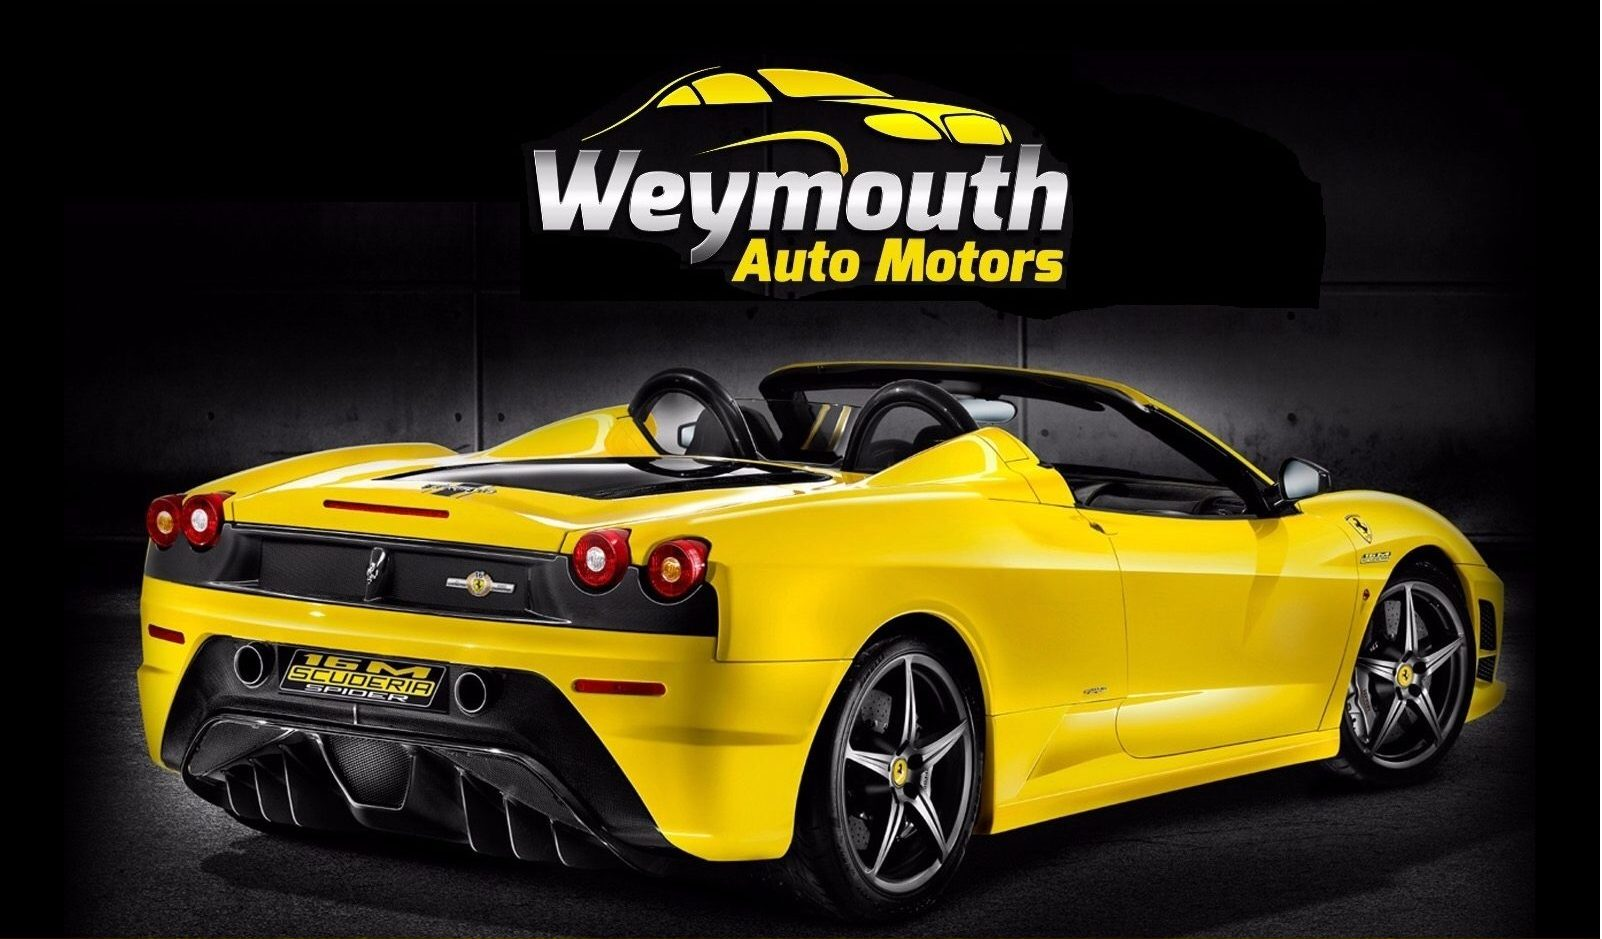 Weymouth Auto Motors Inc